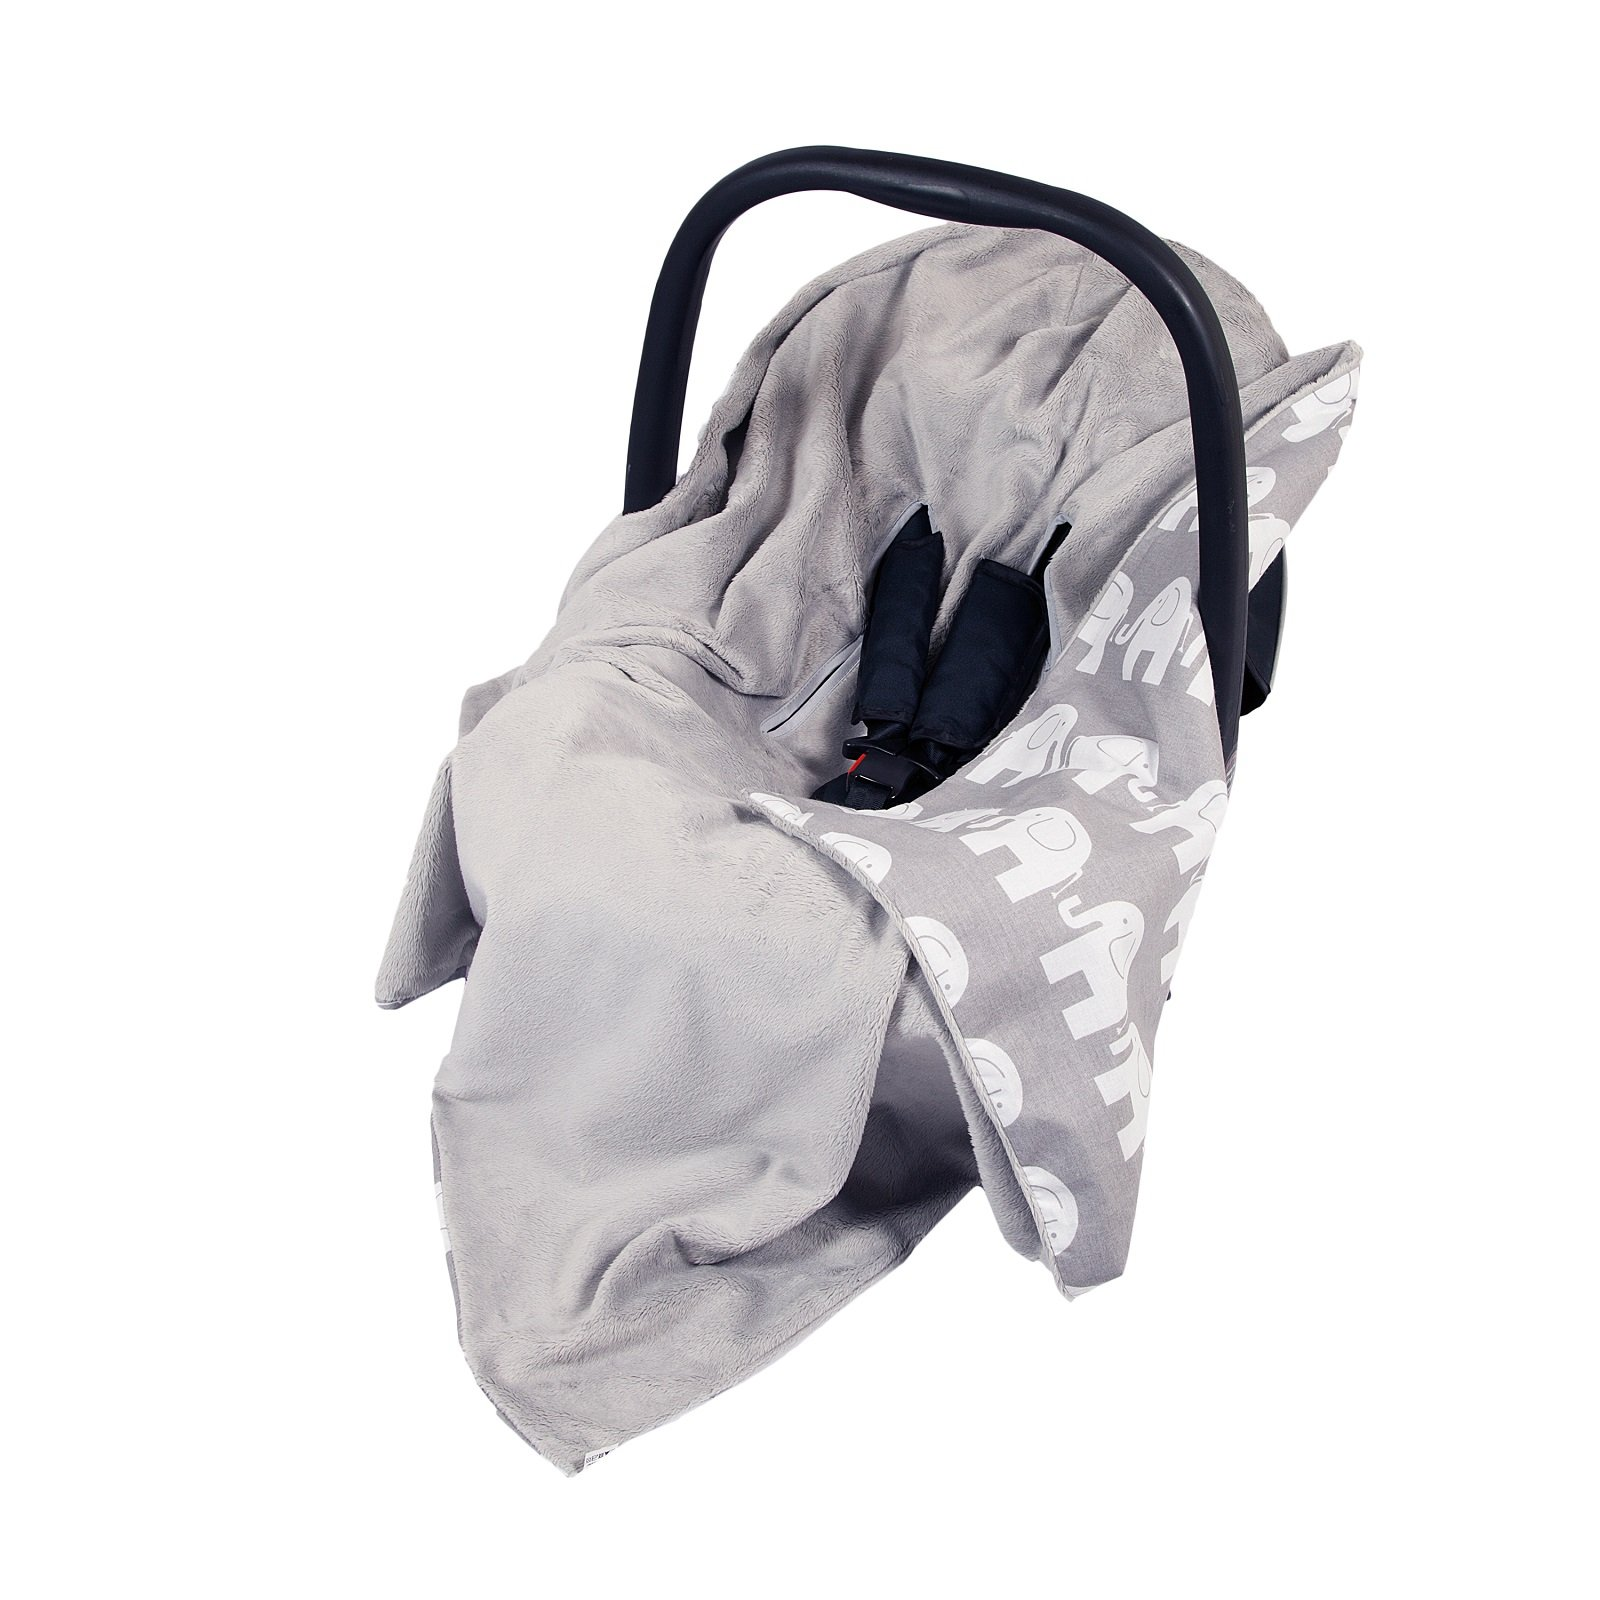 896ebf6893a NEW DOUBLE-SIDED BABY WRAP FOR CAR SEAT BABY TRAVEL WRAP BABY CAR SEAT  BLANKET - GREY GREY WITH WHITE ELEPHANTS WRAP BLANKET COVER COSYTOES -  FOOTMUFF!